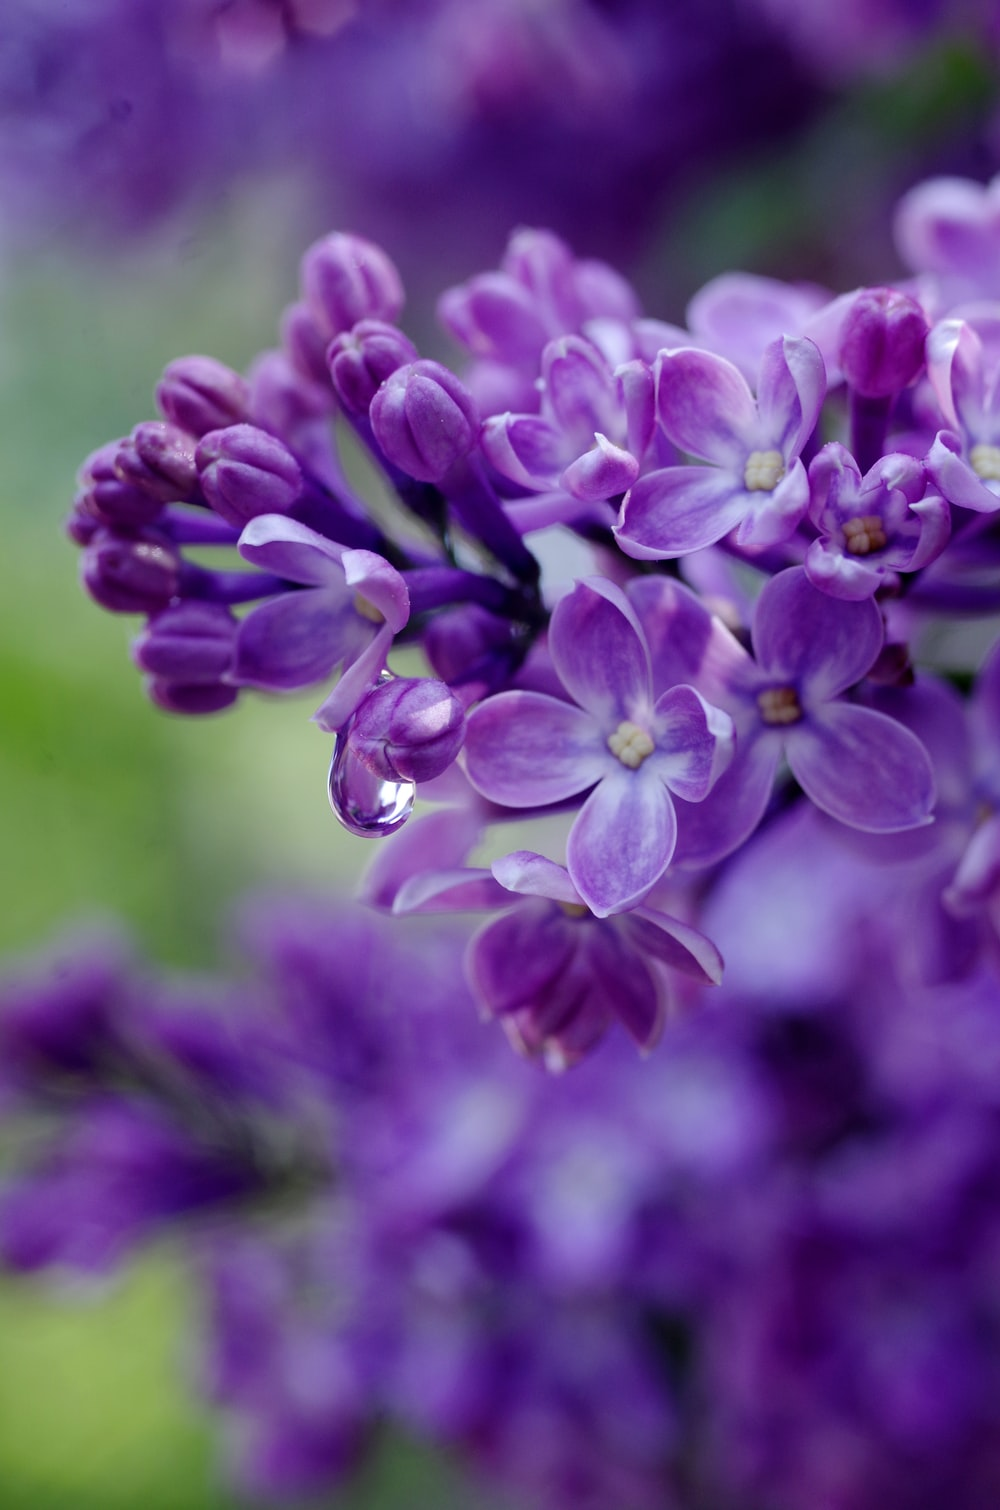 selective focus photography of purple flowers